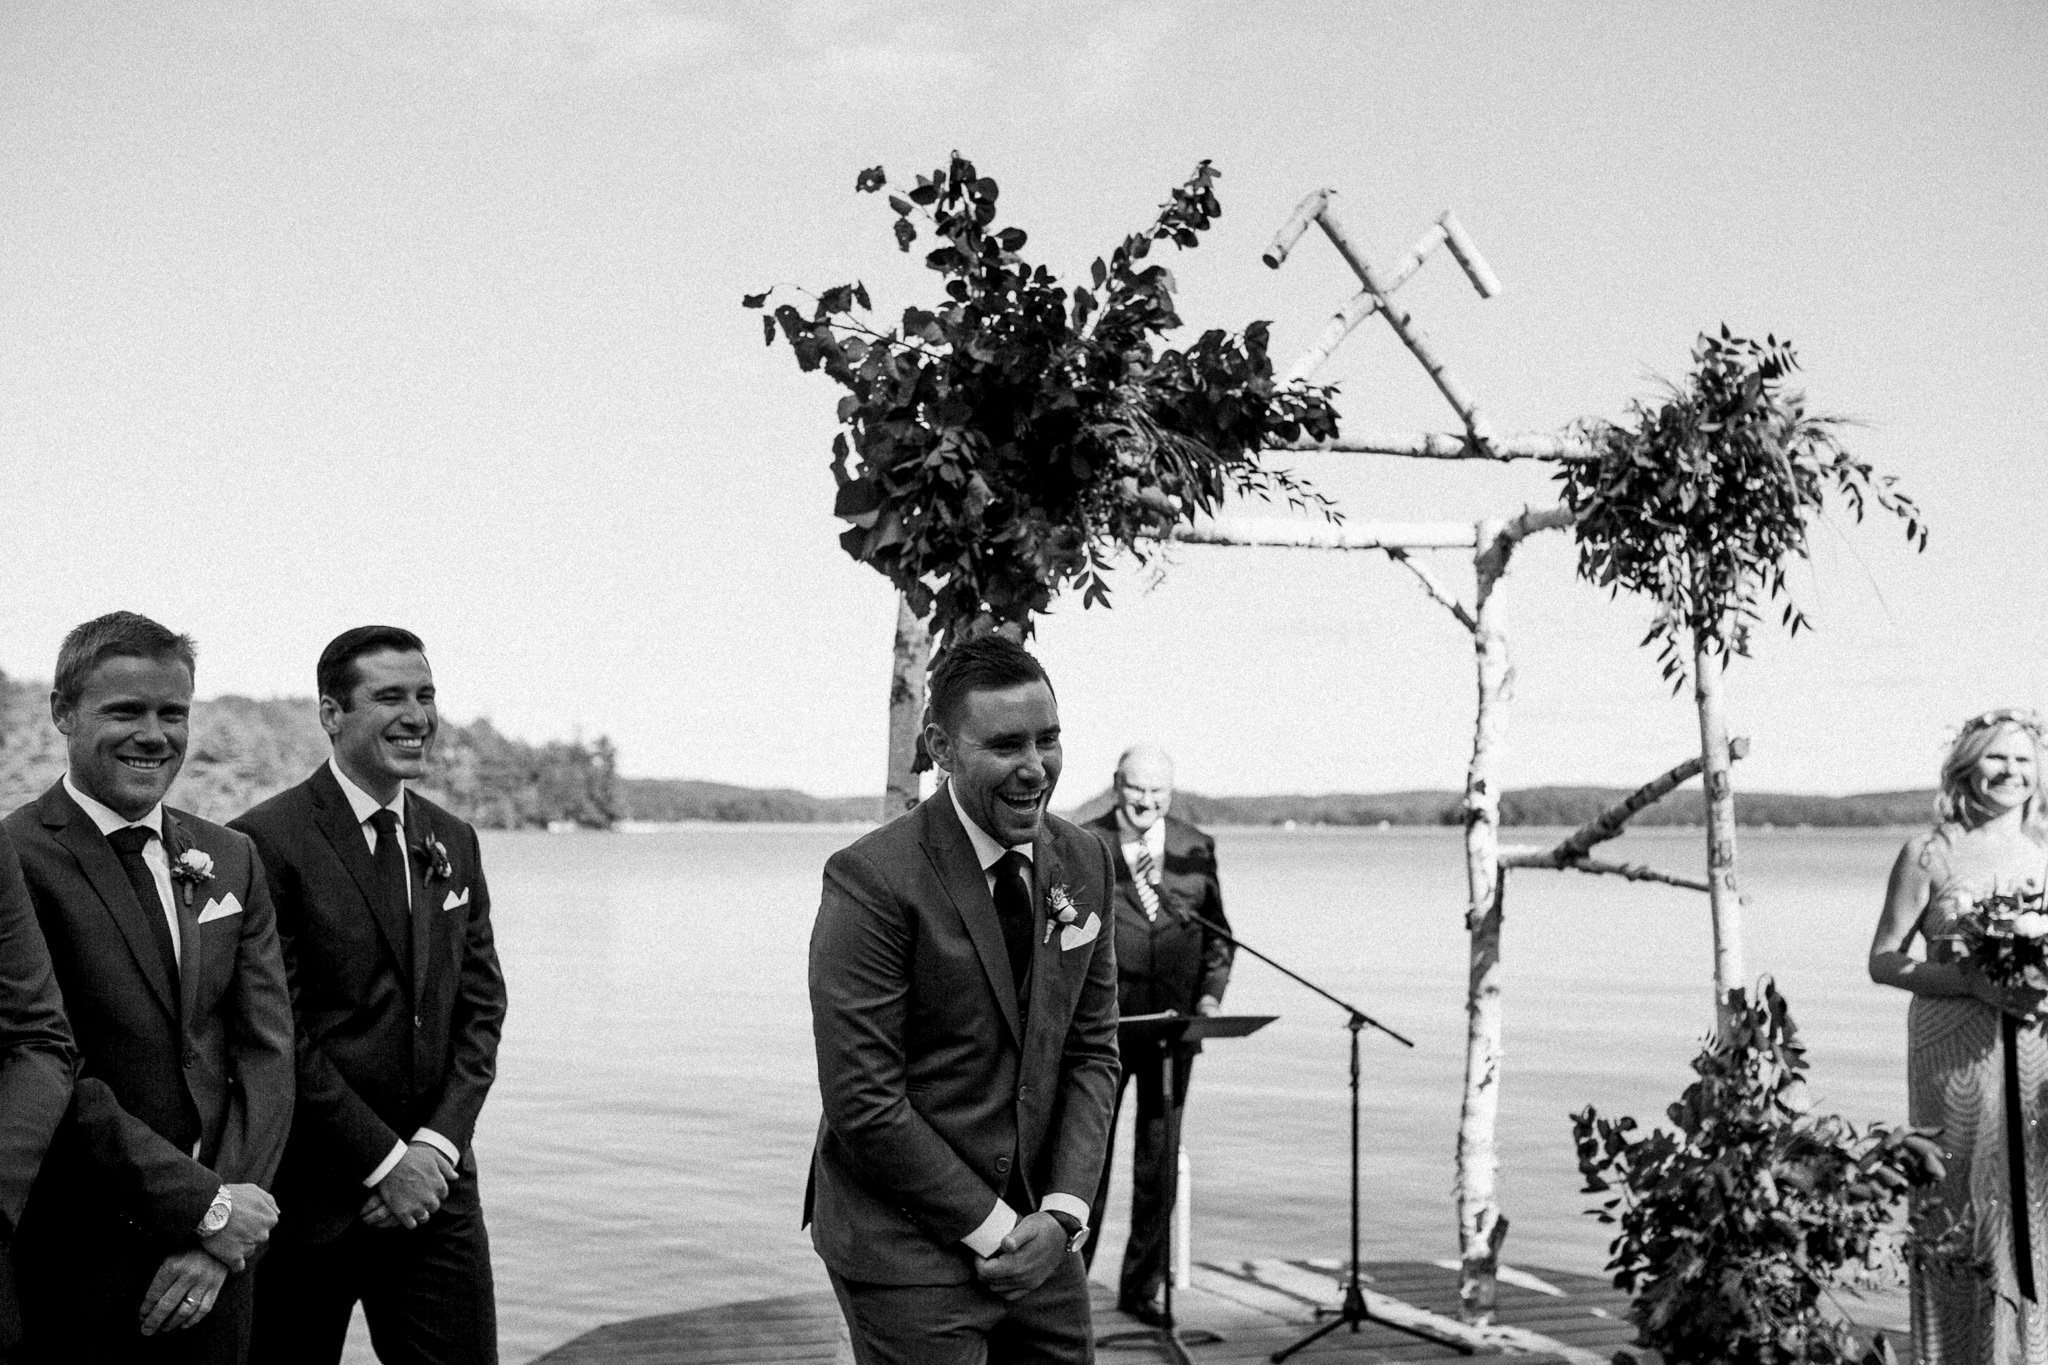 Muskoka lakeside wedding at Port Cunnington Lodge by Max Wong Photo (46)